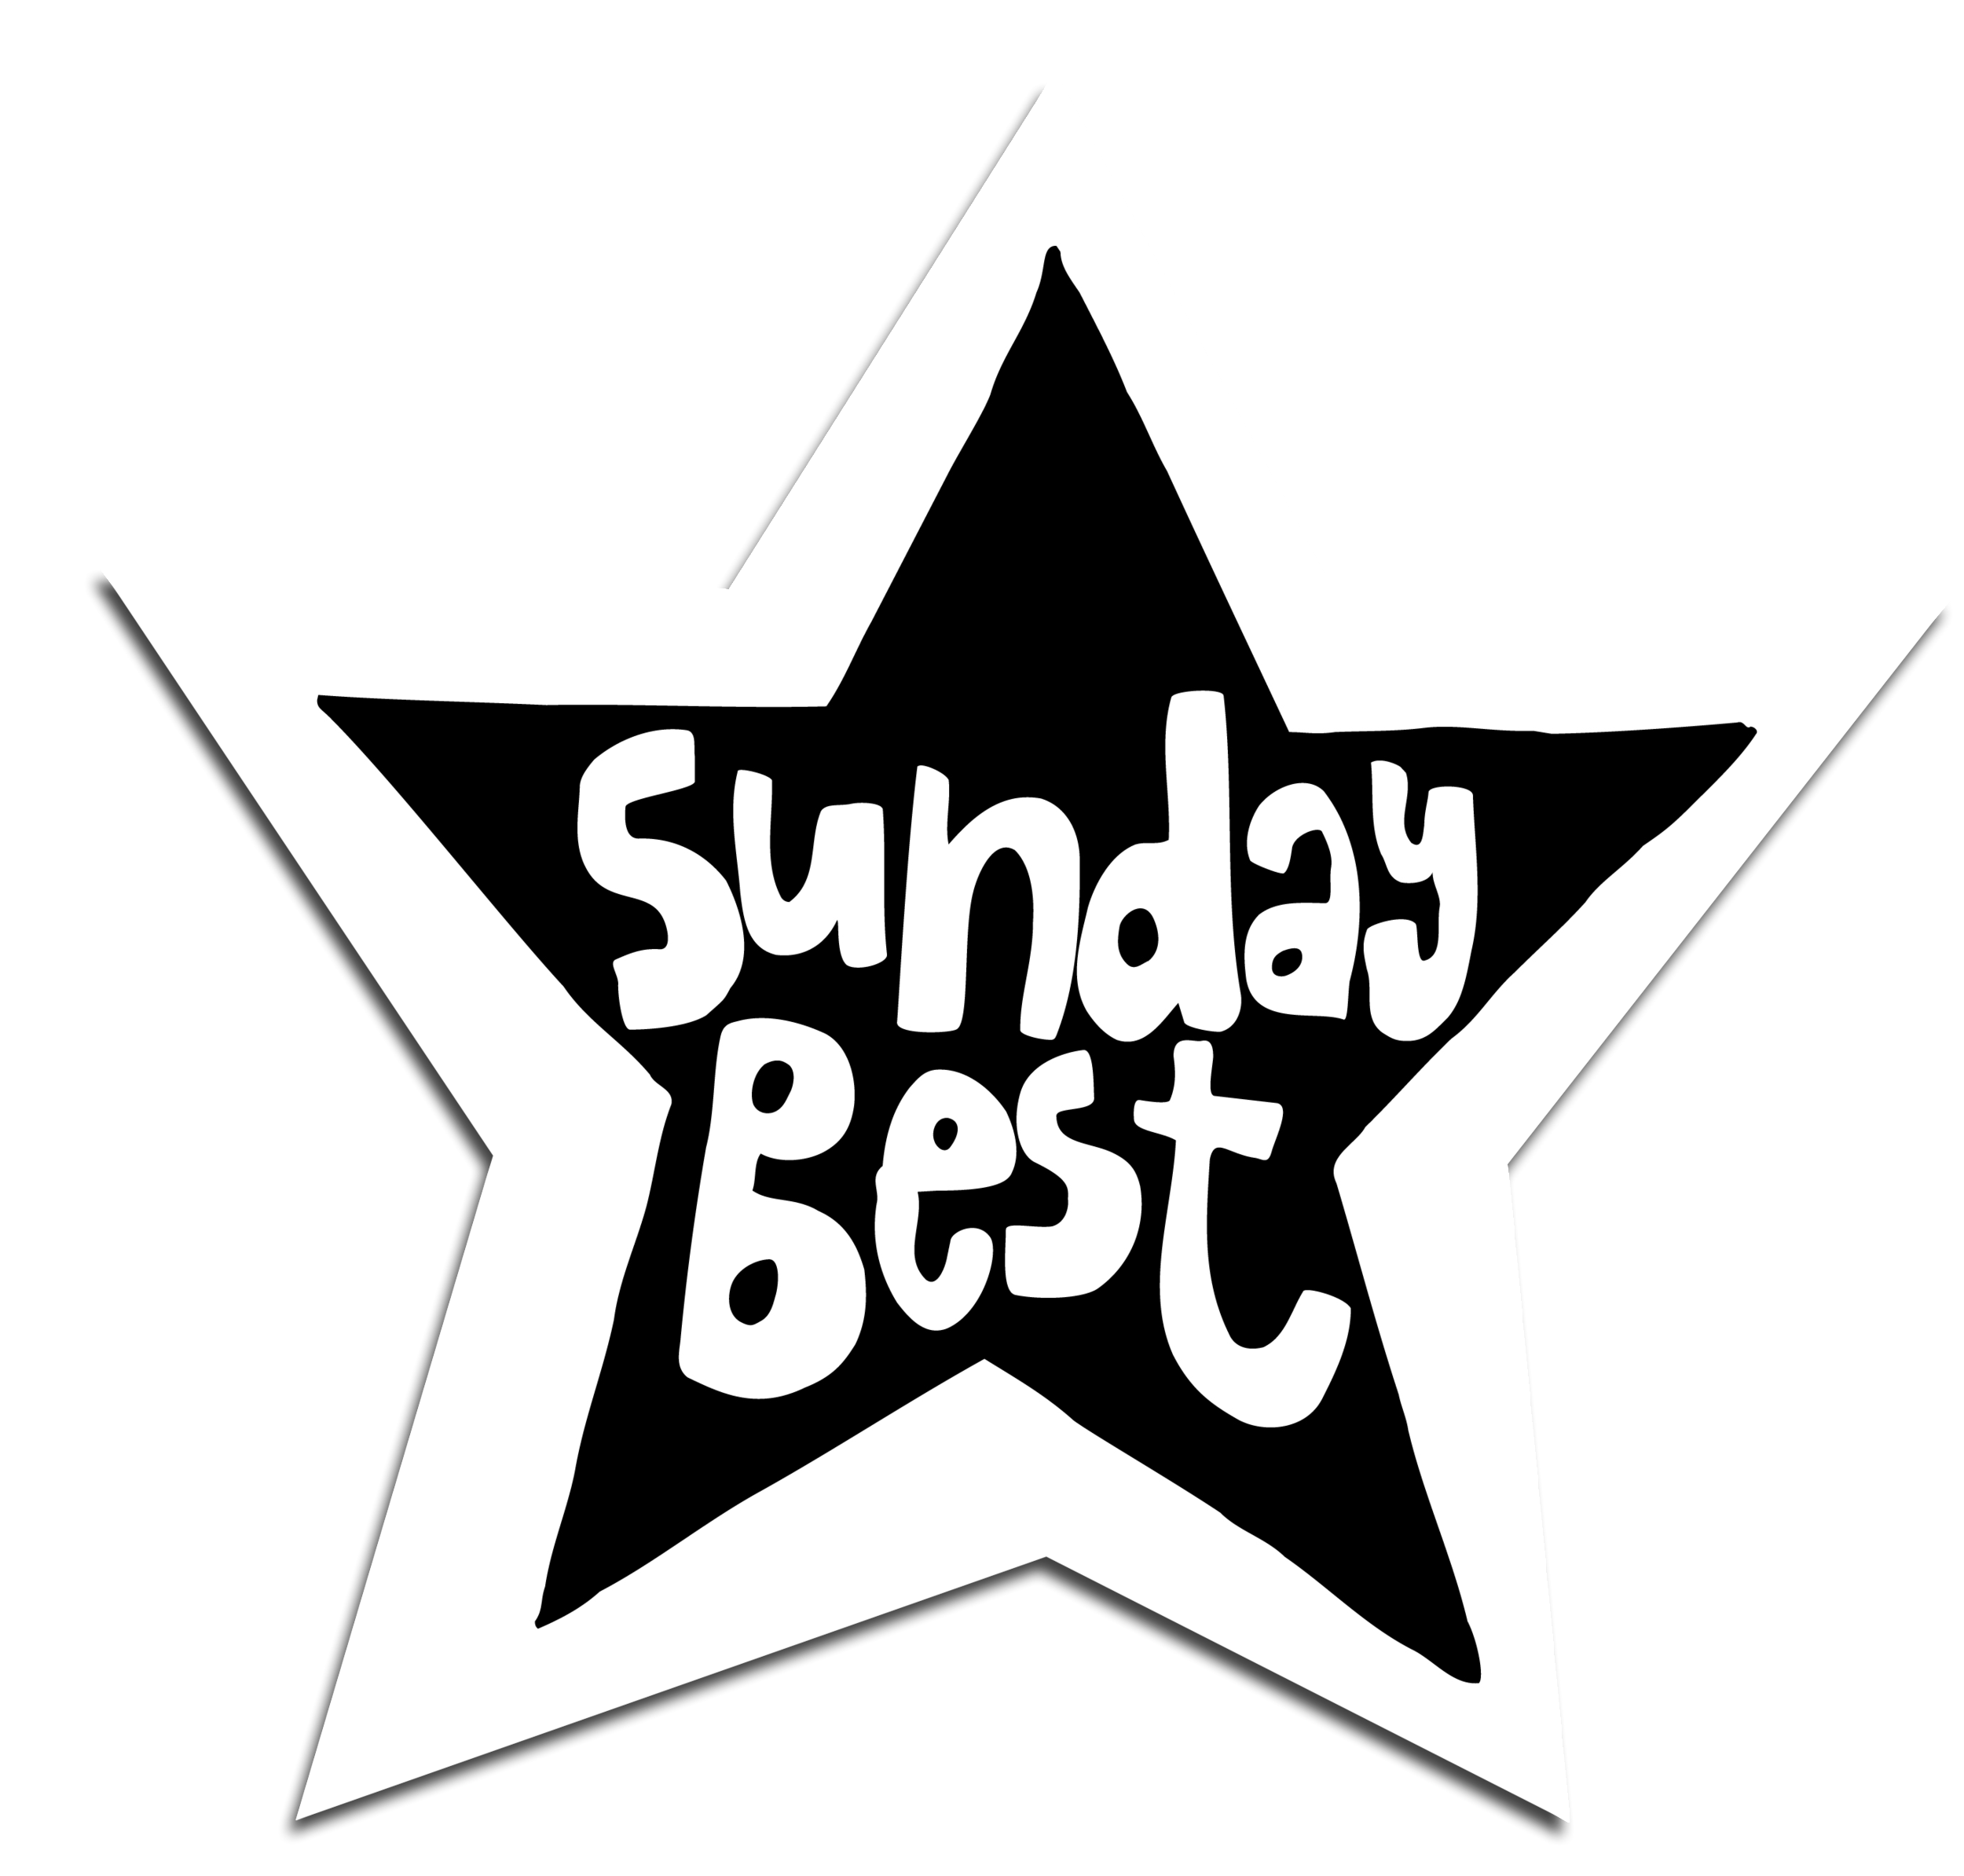 SBest.Logo.StarFilled300dpi.png